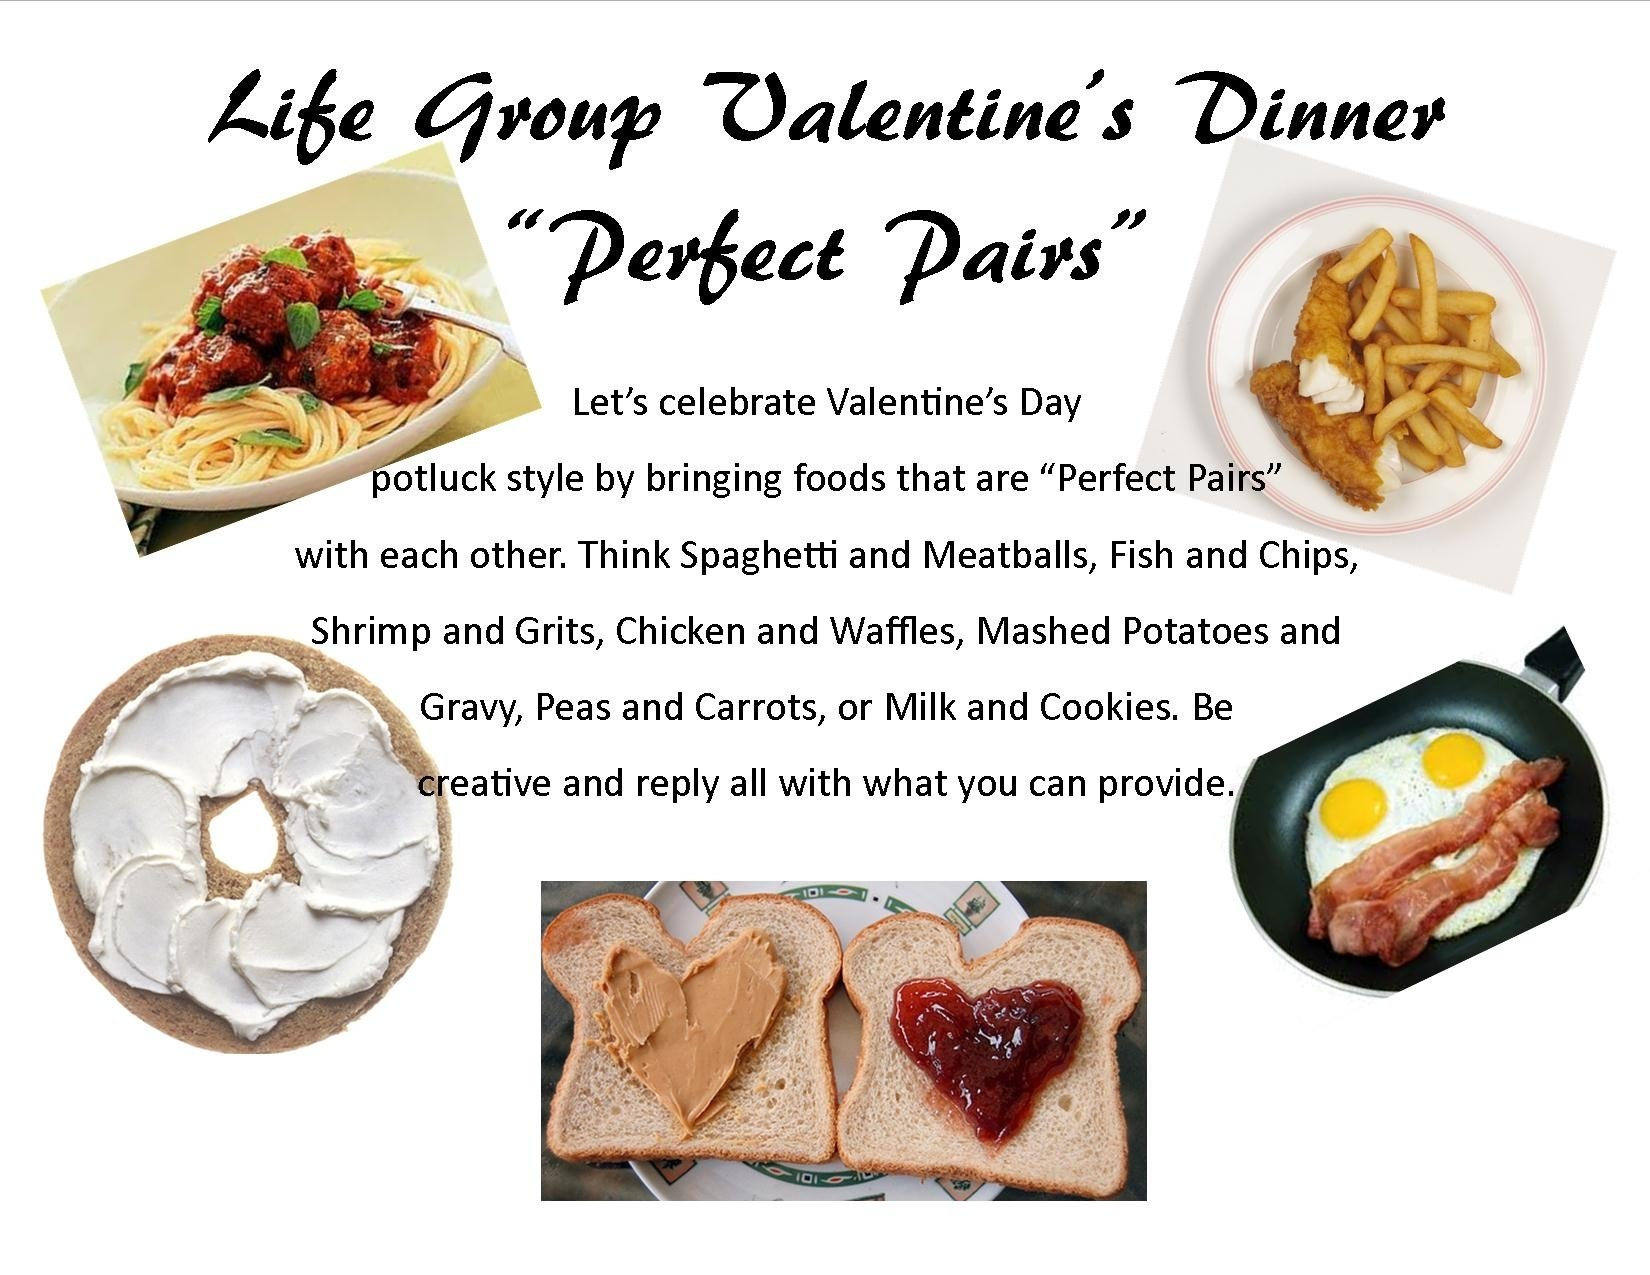 10 Awesome Food Day At Work Ideas perfect pairs potluck valentines day themed party clementine bean 1 2020